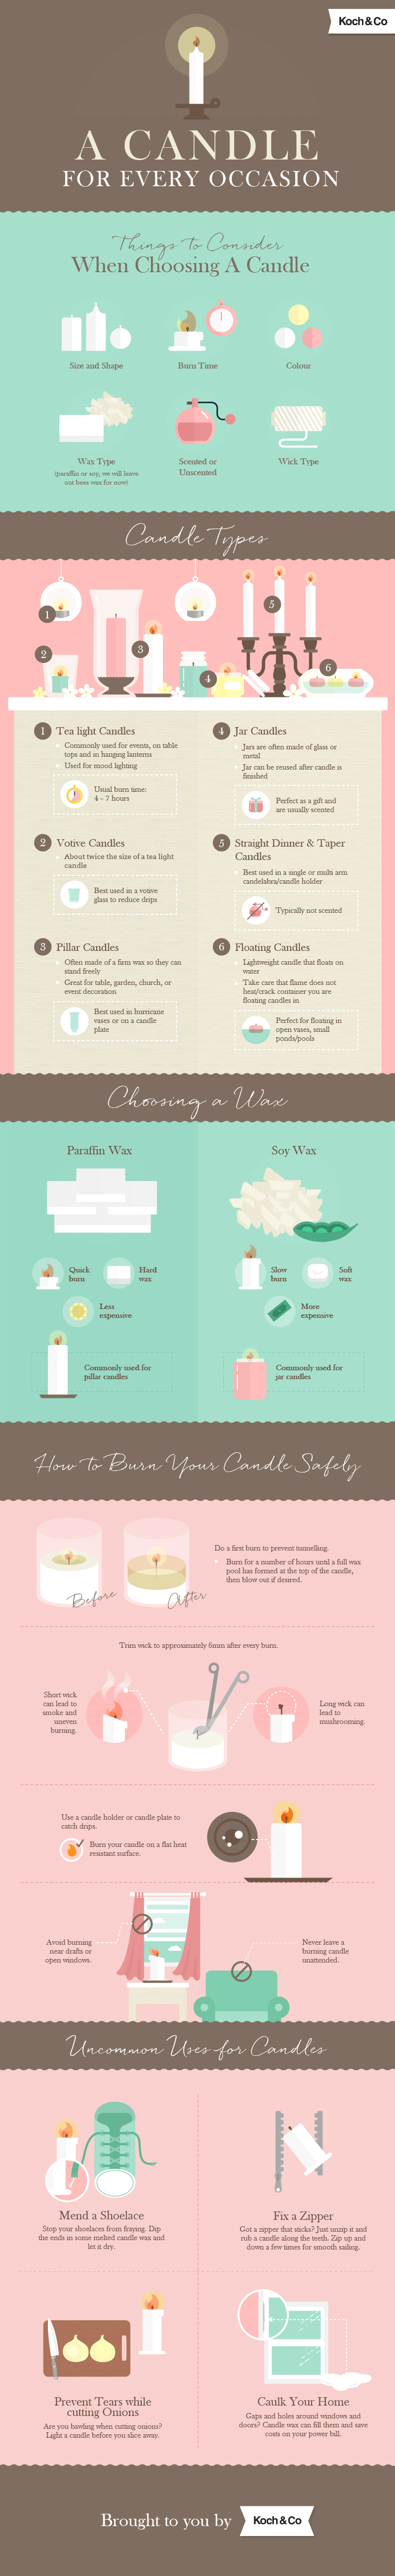 A Candle For Every Occasion  - An Infographic from